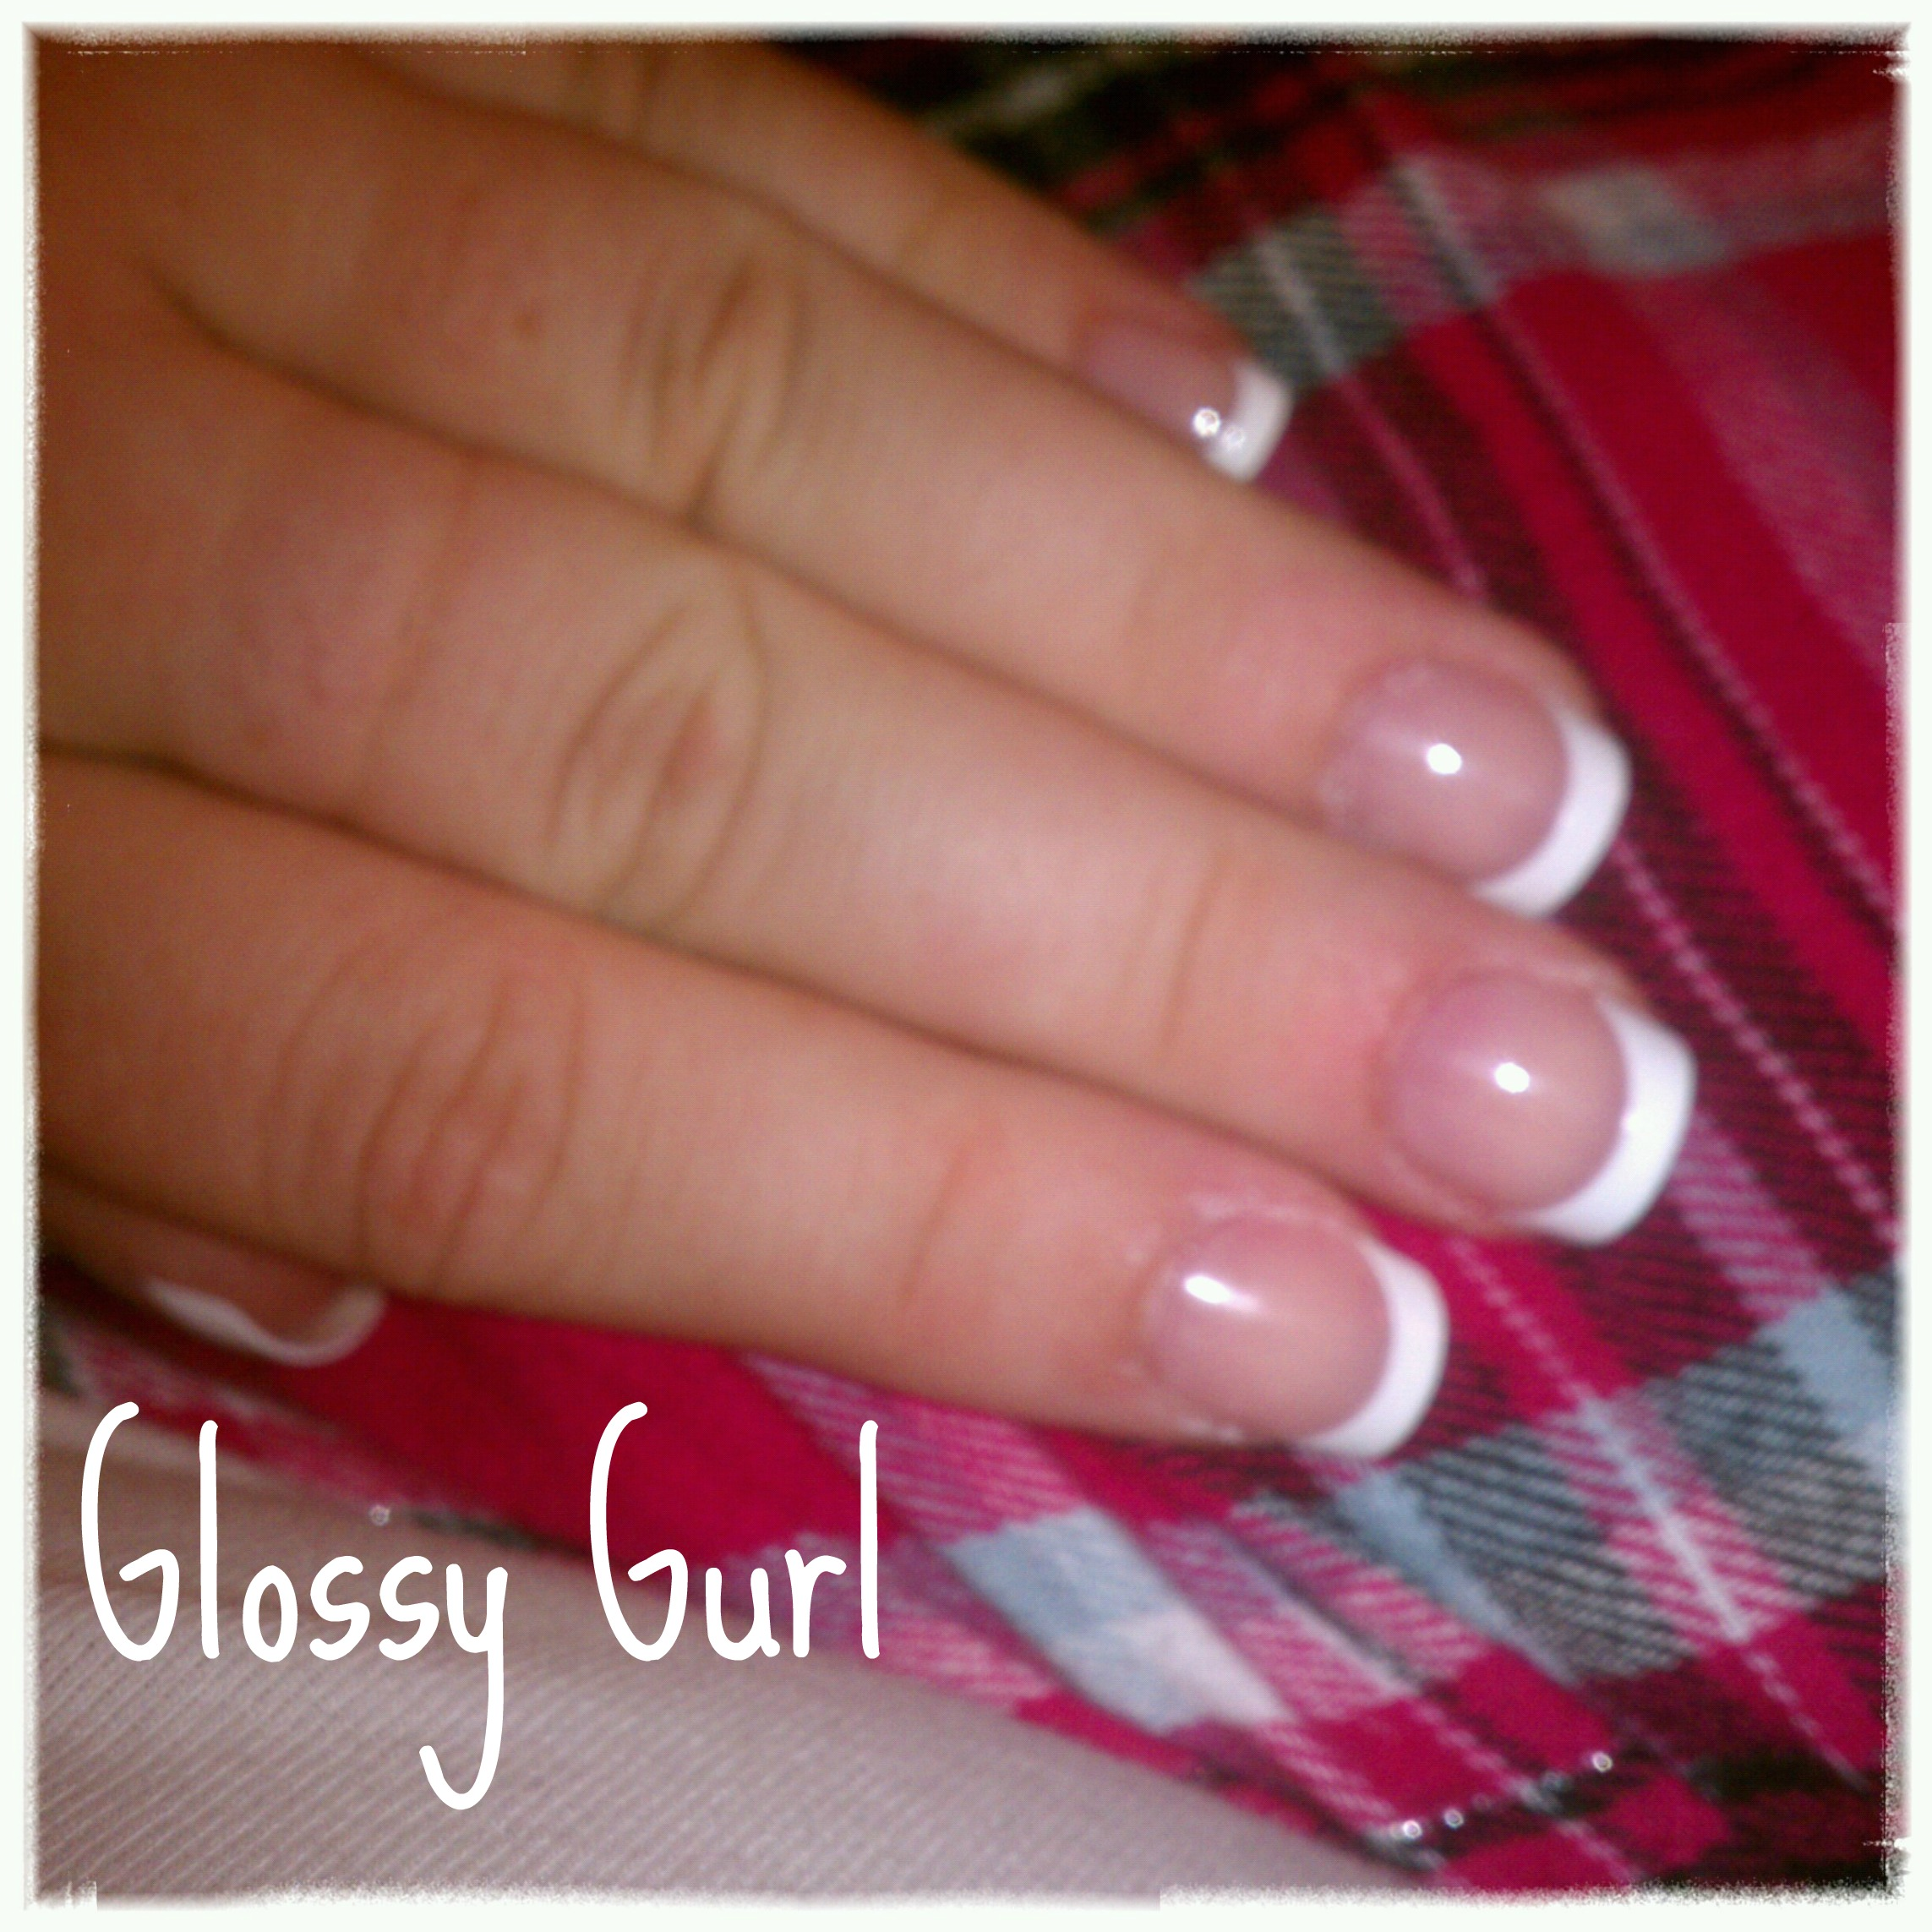 Fake Nails | Glossy Gurl